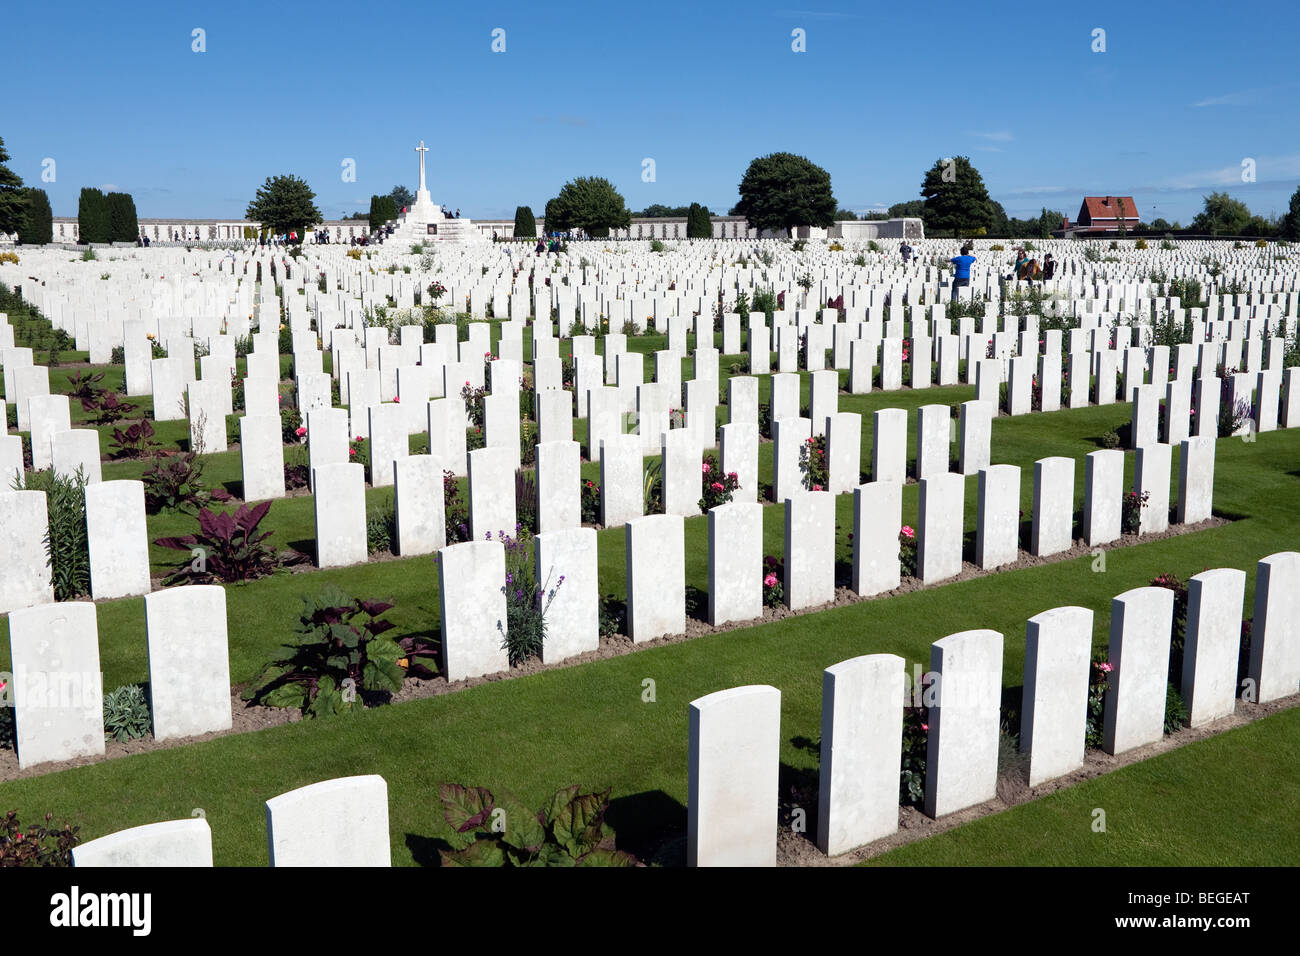 View over Tyne Cot Military Cemetery. First World War British cemetery with 11,856 white gravestones. - Stock Image